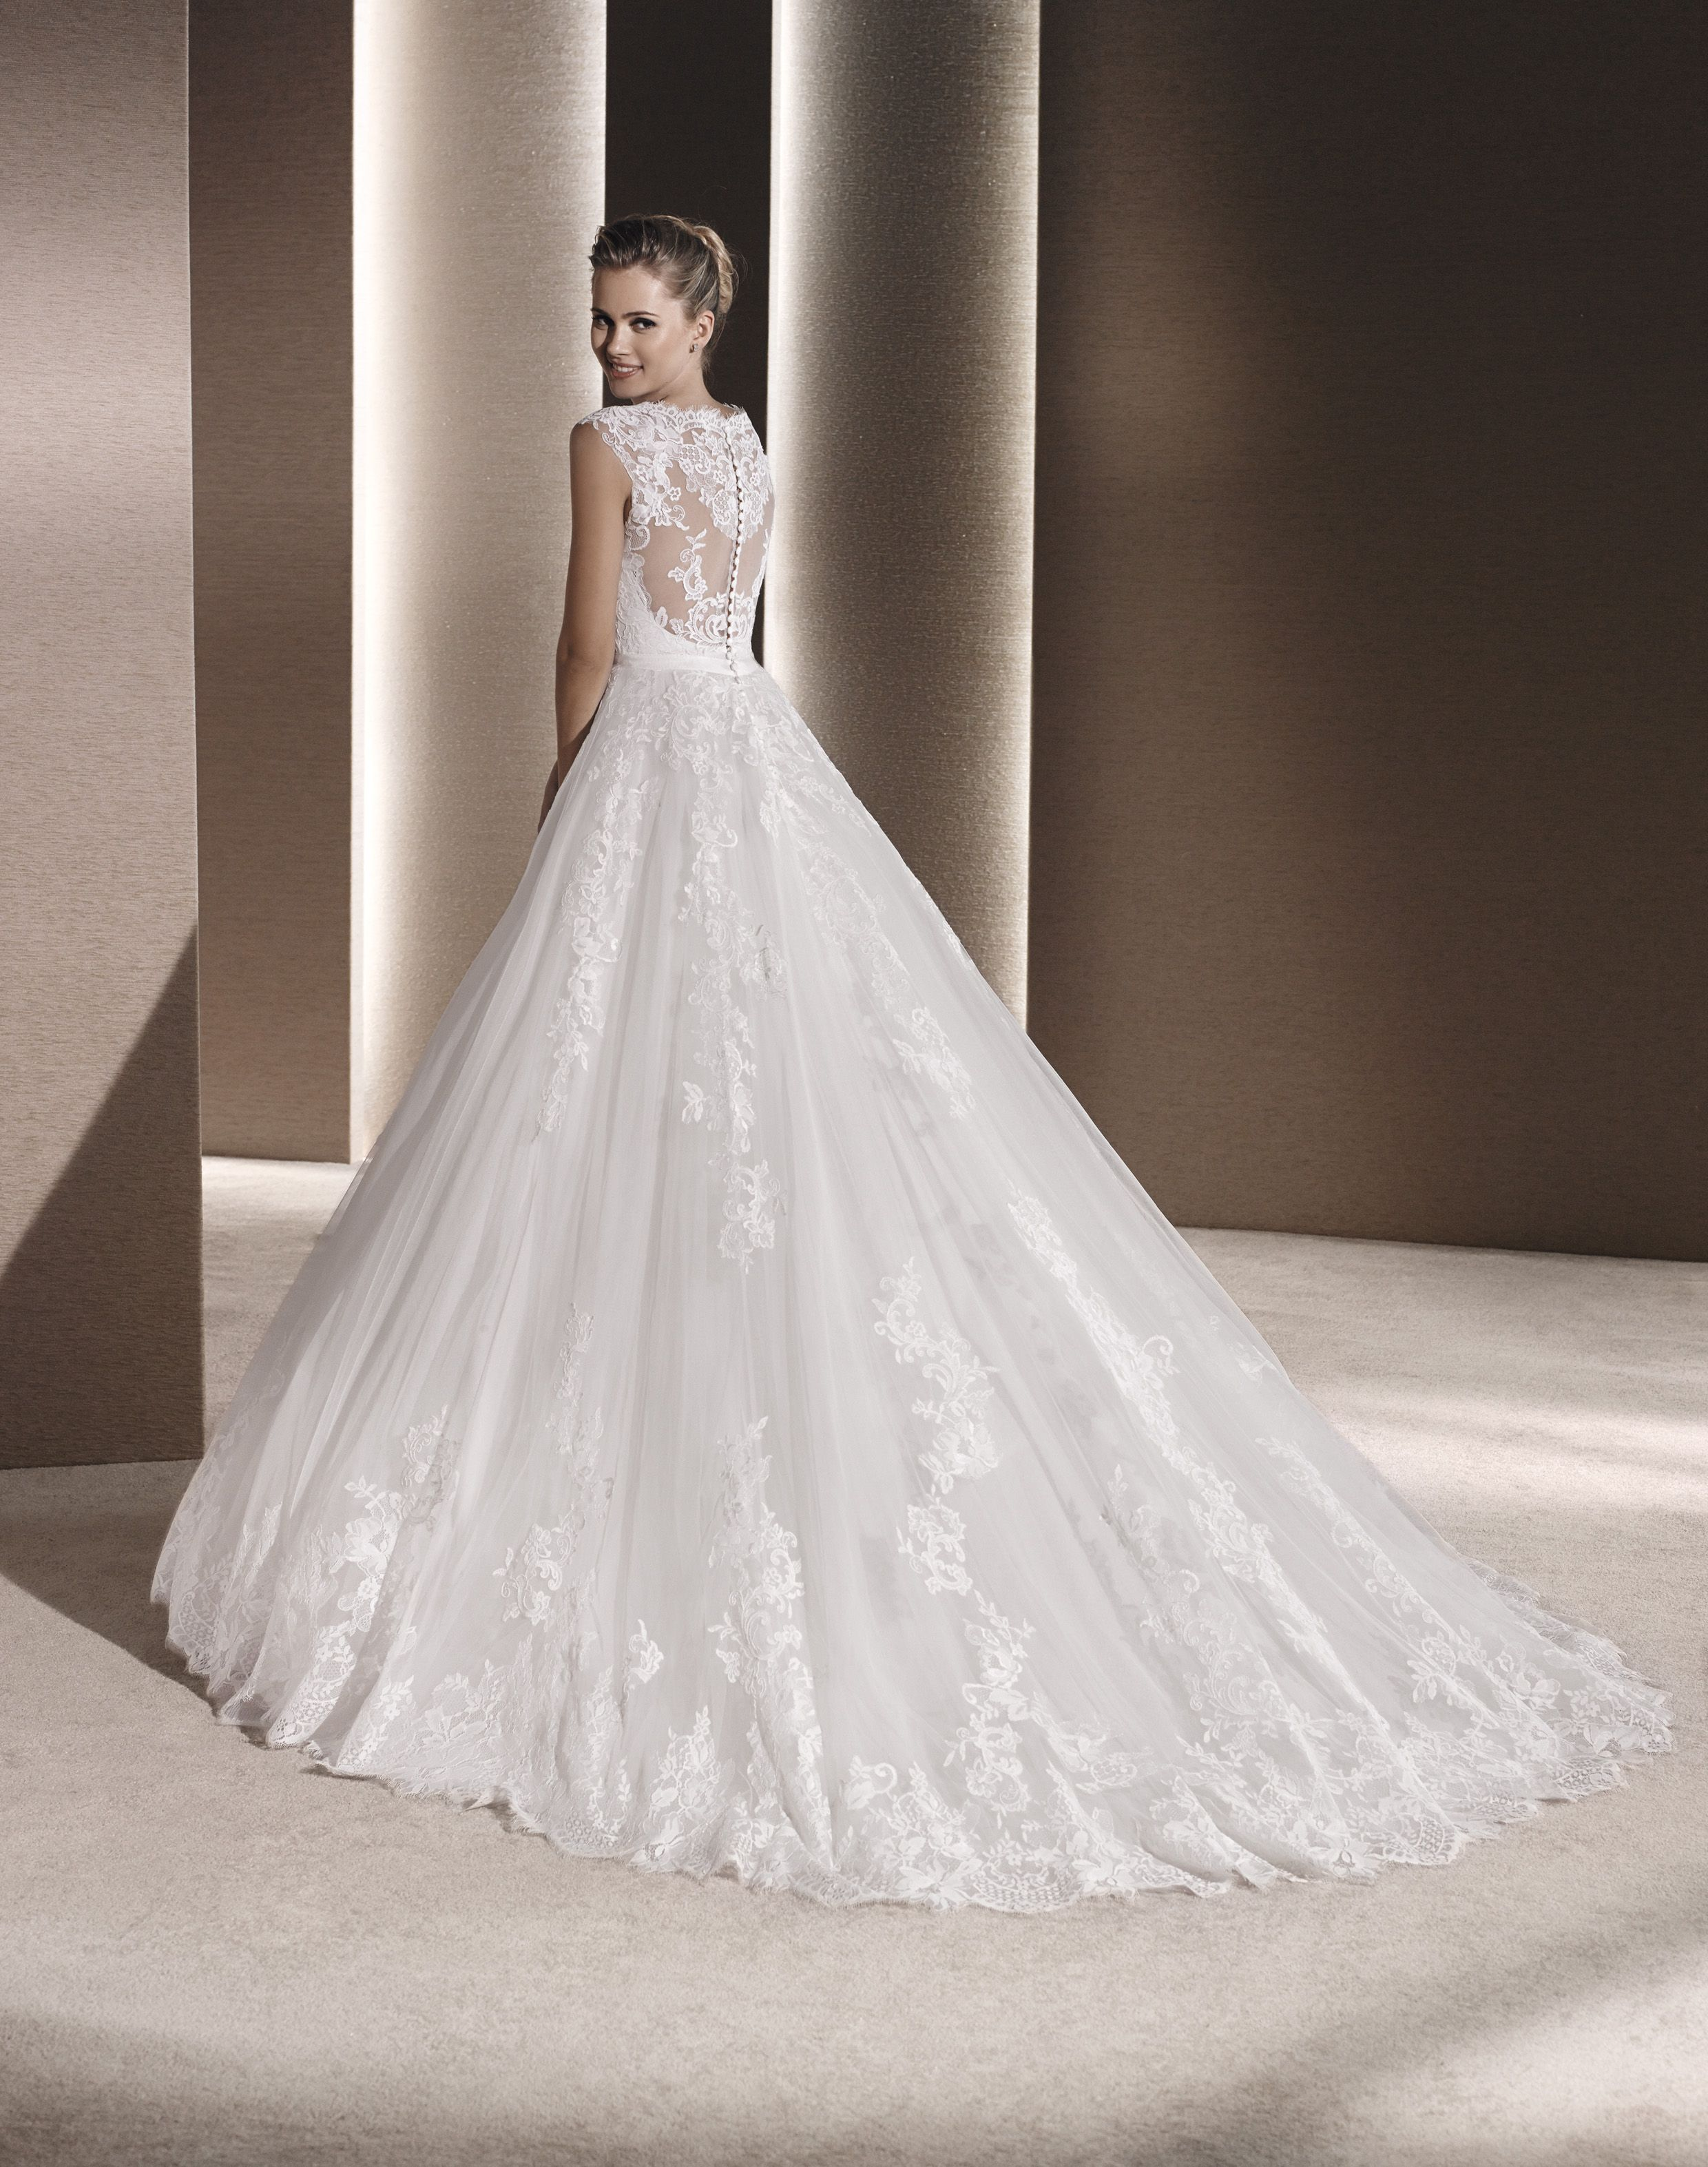 Meet our newest designer gown raven from the collection by